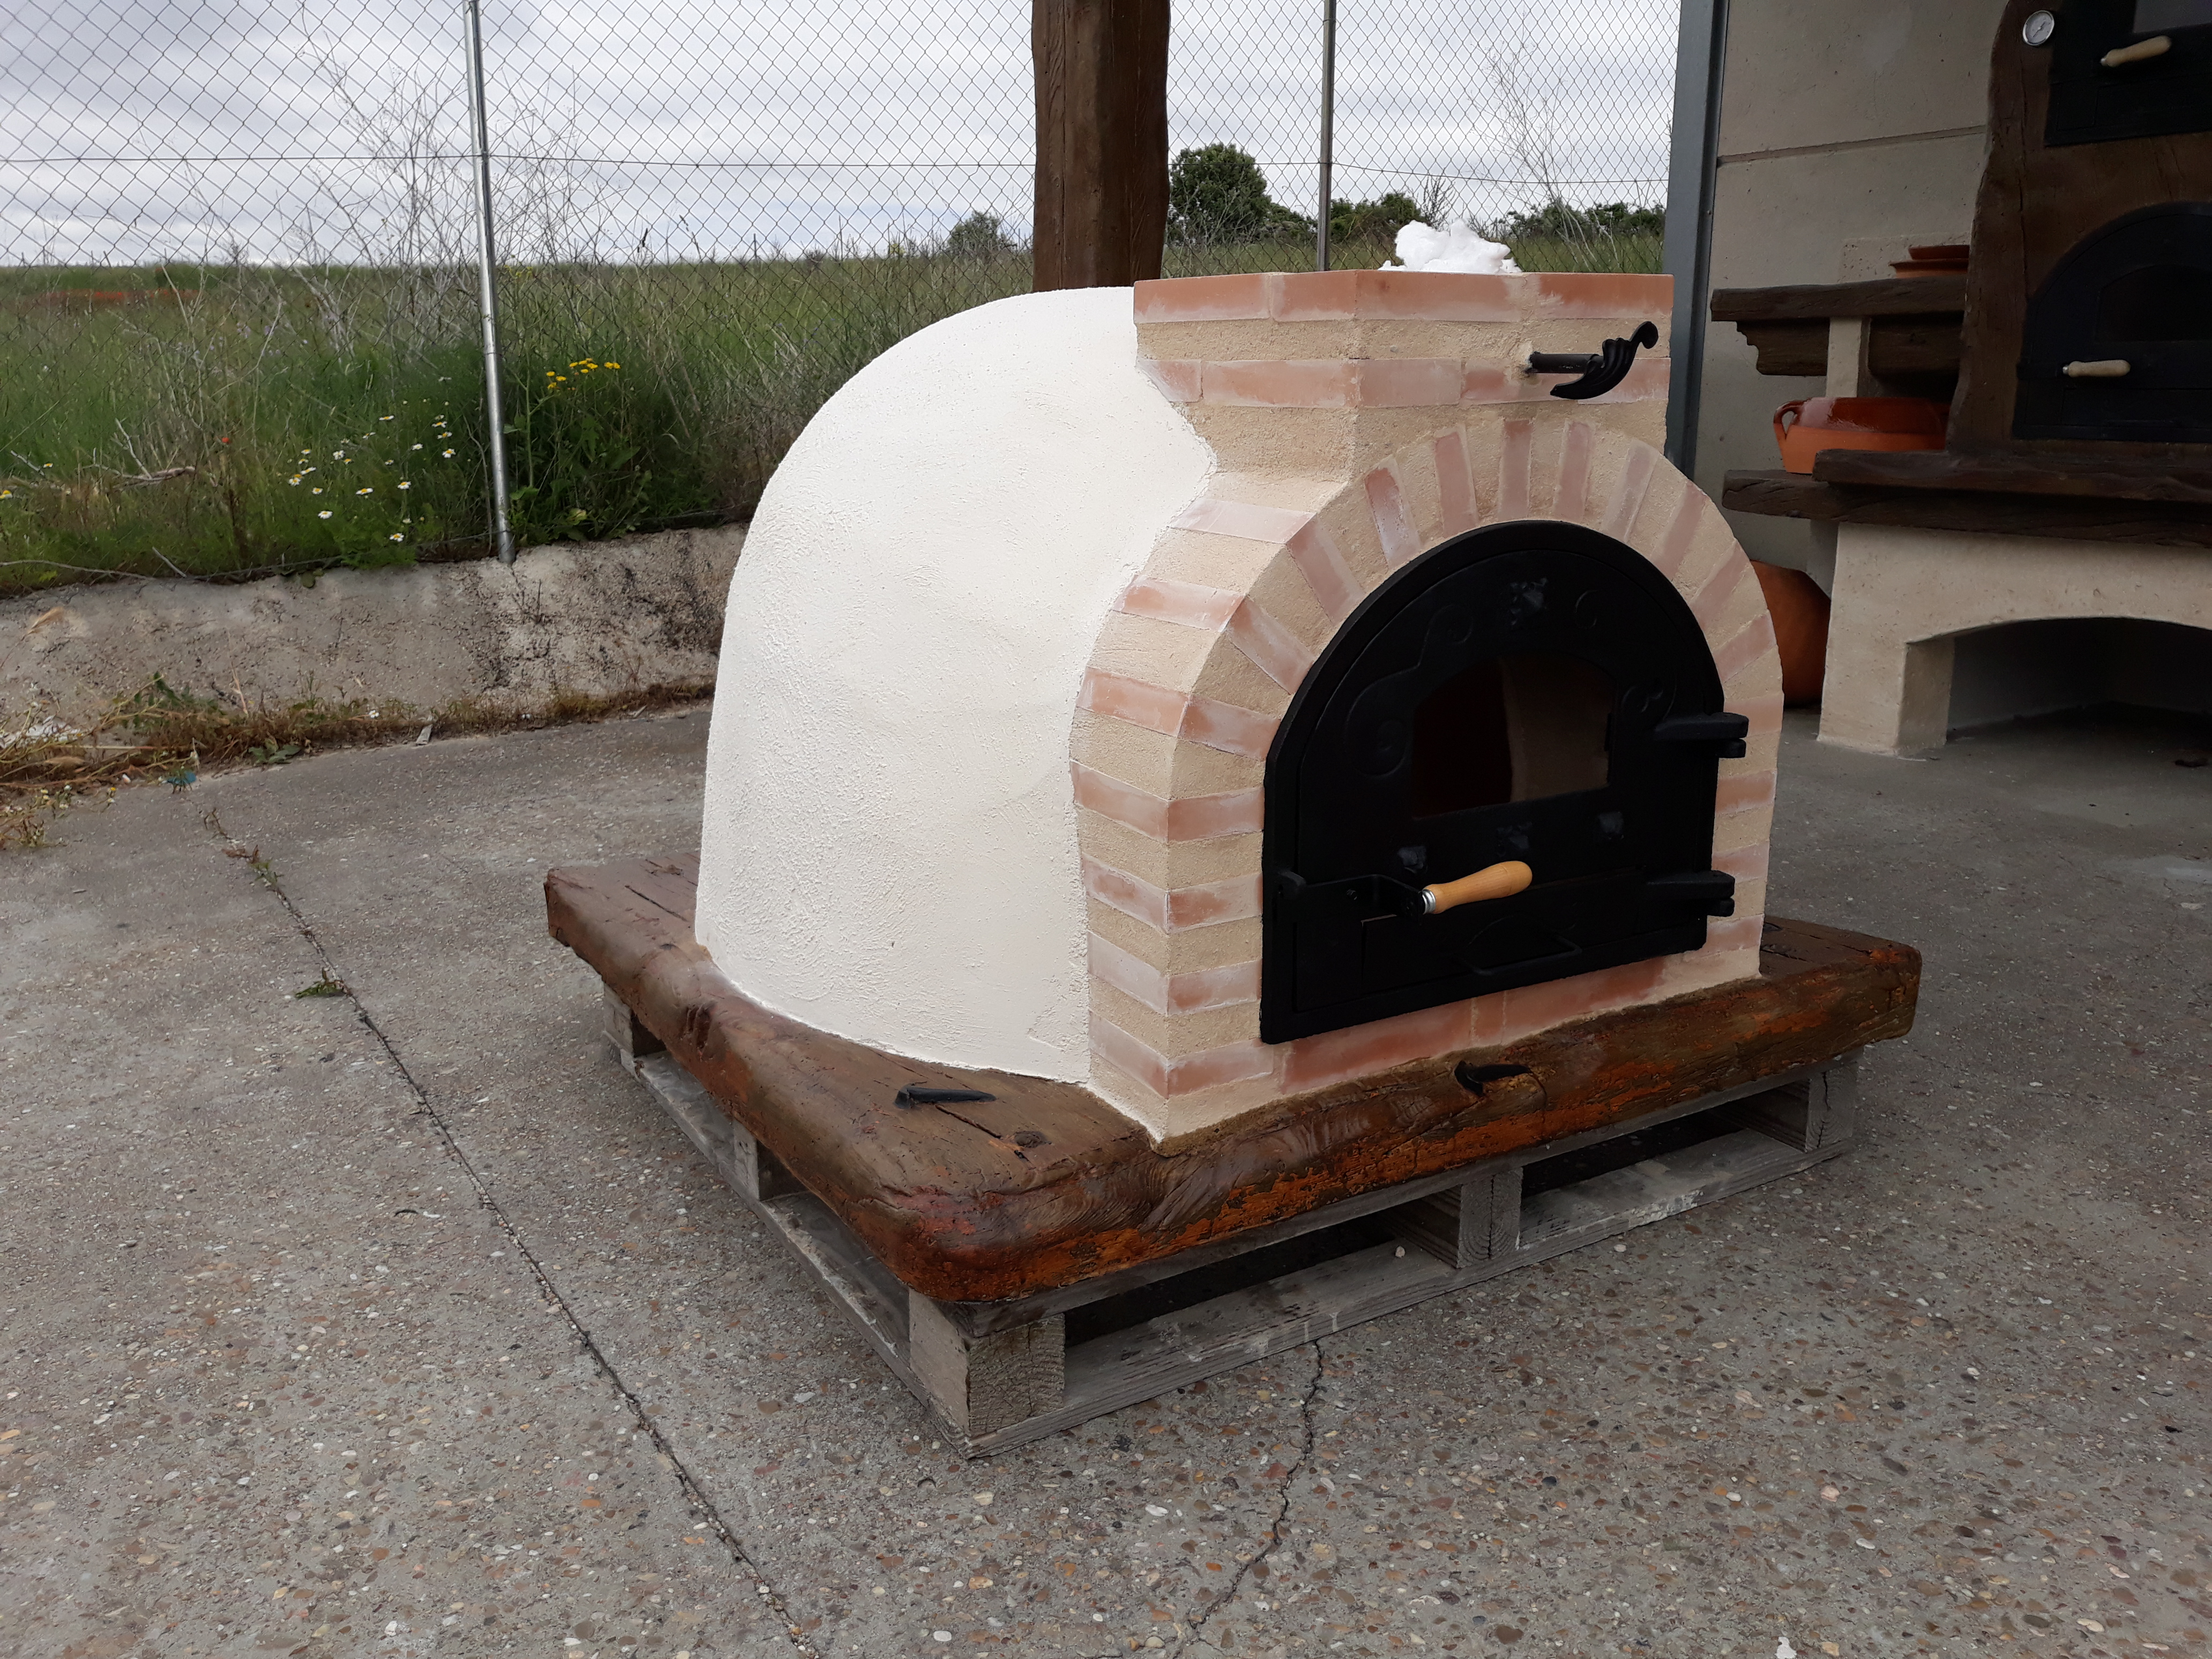 Brick Outdoor Wood Fired Pizza Oven 100cm X 100cm Mosaic Black Model New Varieties Are Introduced One After Another Outdoor Cooking & Eating